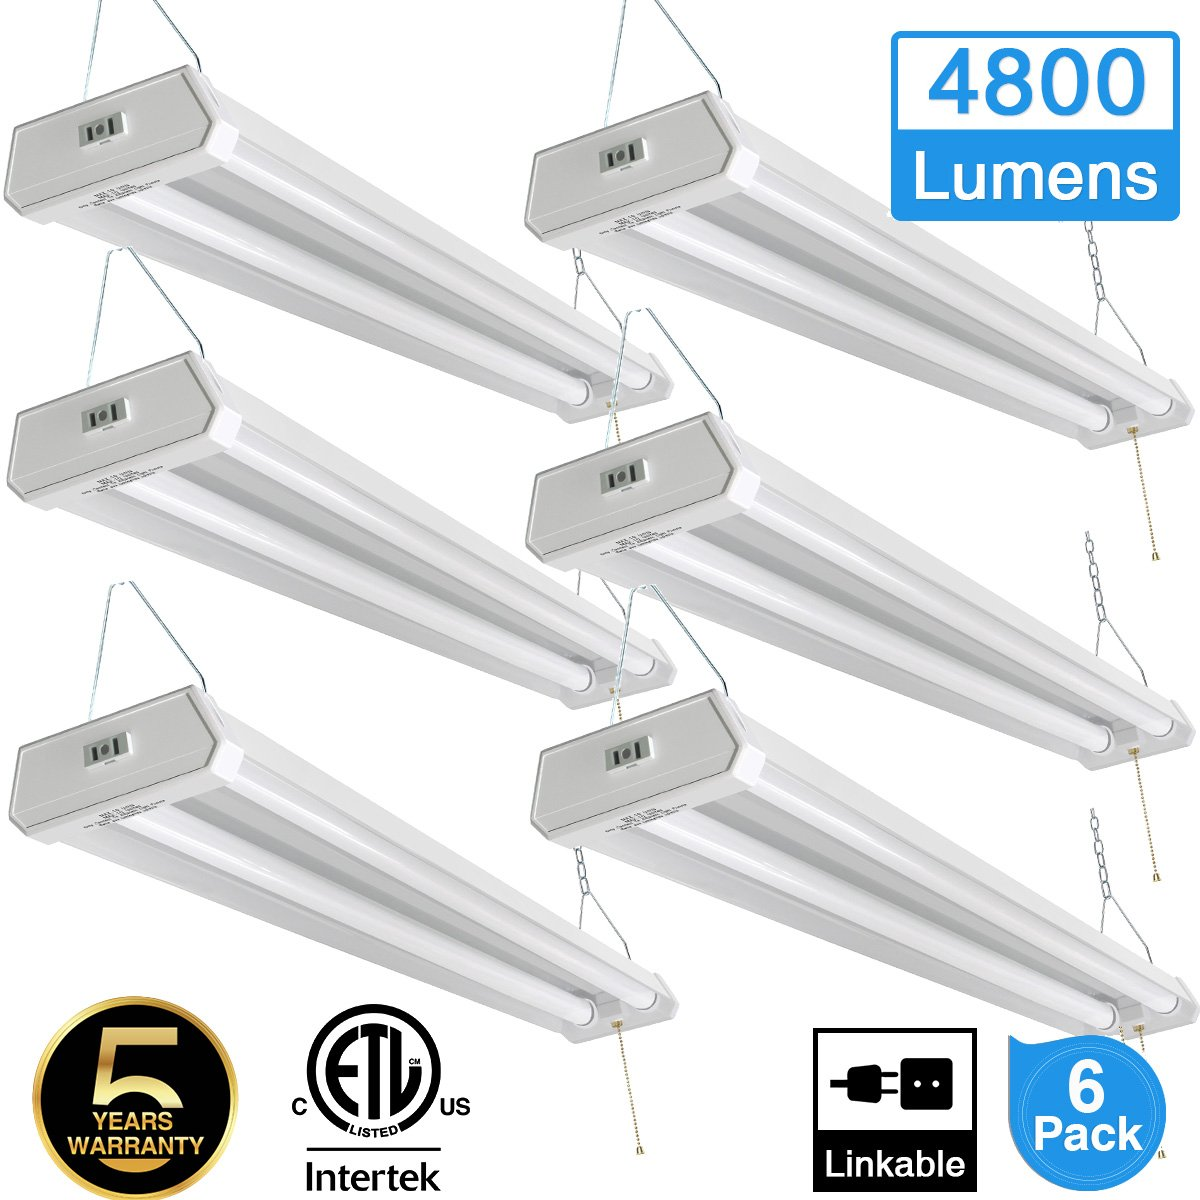 Linkable LED Shop light for garage, 42W 4800lm 4FT(6pk), 5000K Daylight White, With Pull Chain (ON/OFF) cETLus Listed, 5-Year-Warranty, 5000K (6PK)